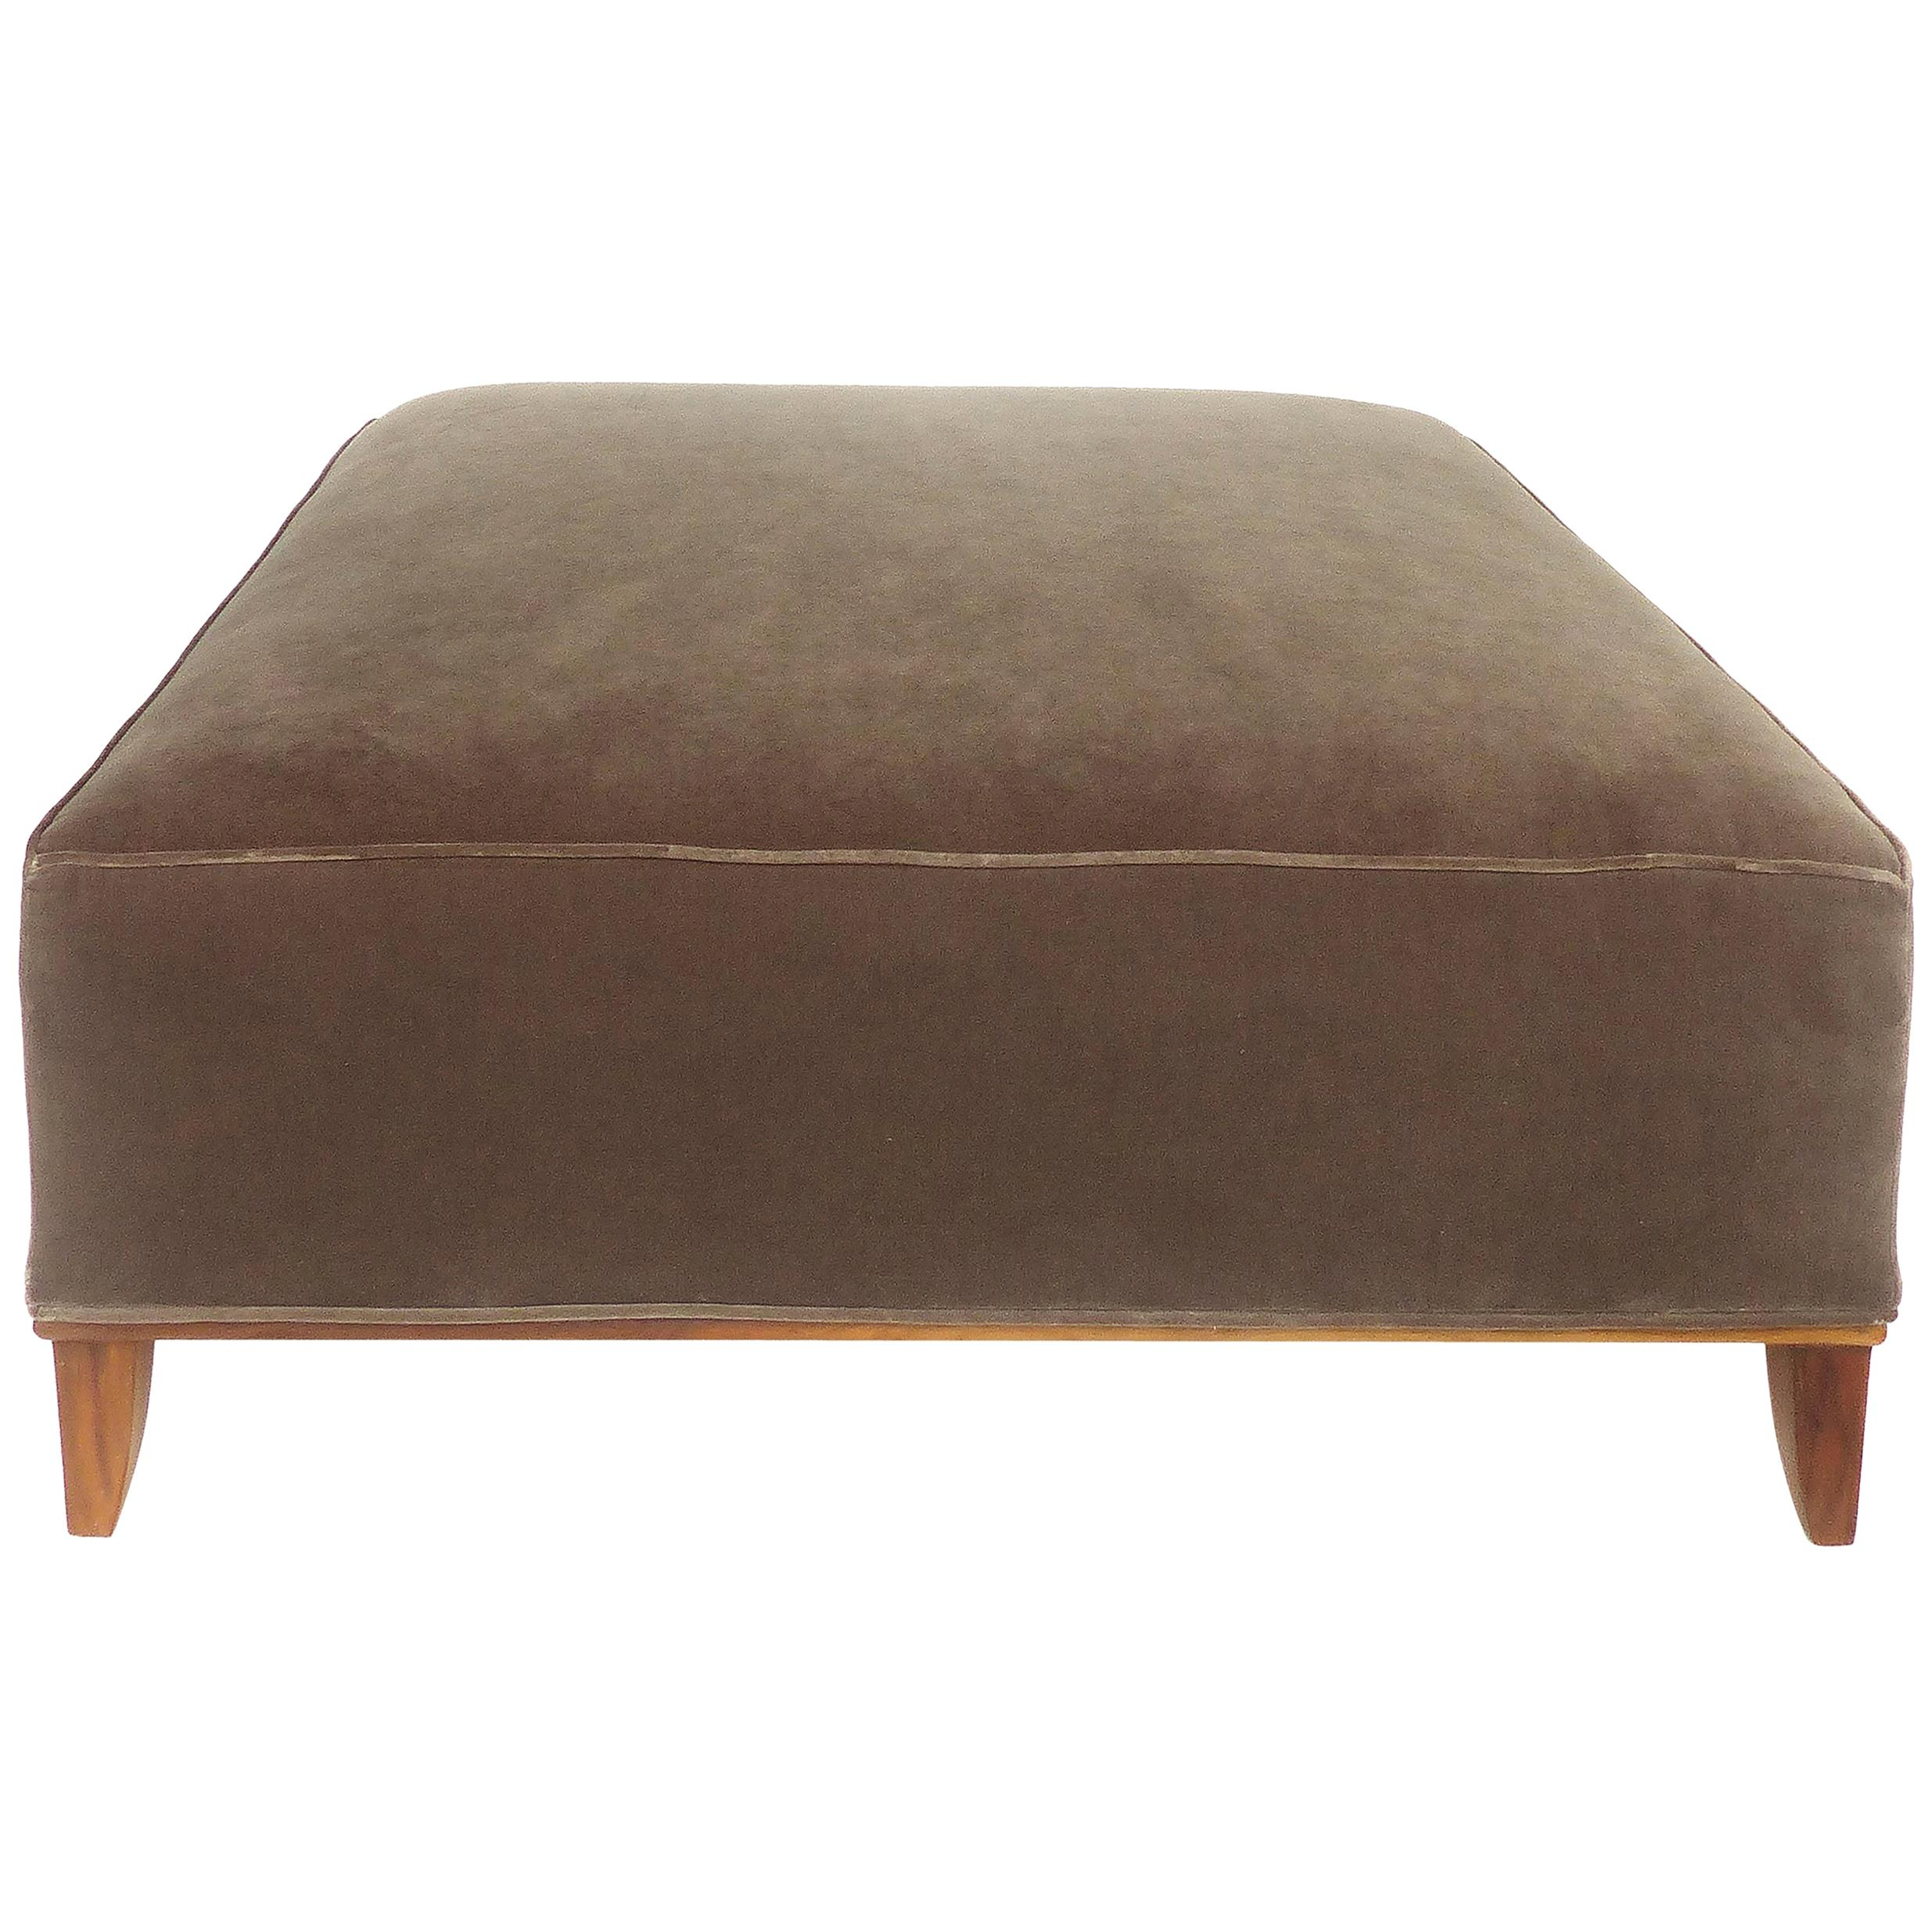 Mid-Century Modern Newly Upholstered Ottoman in Mohair with Wood Base